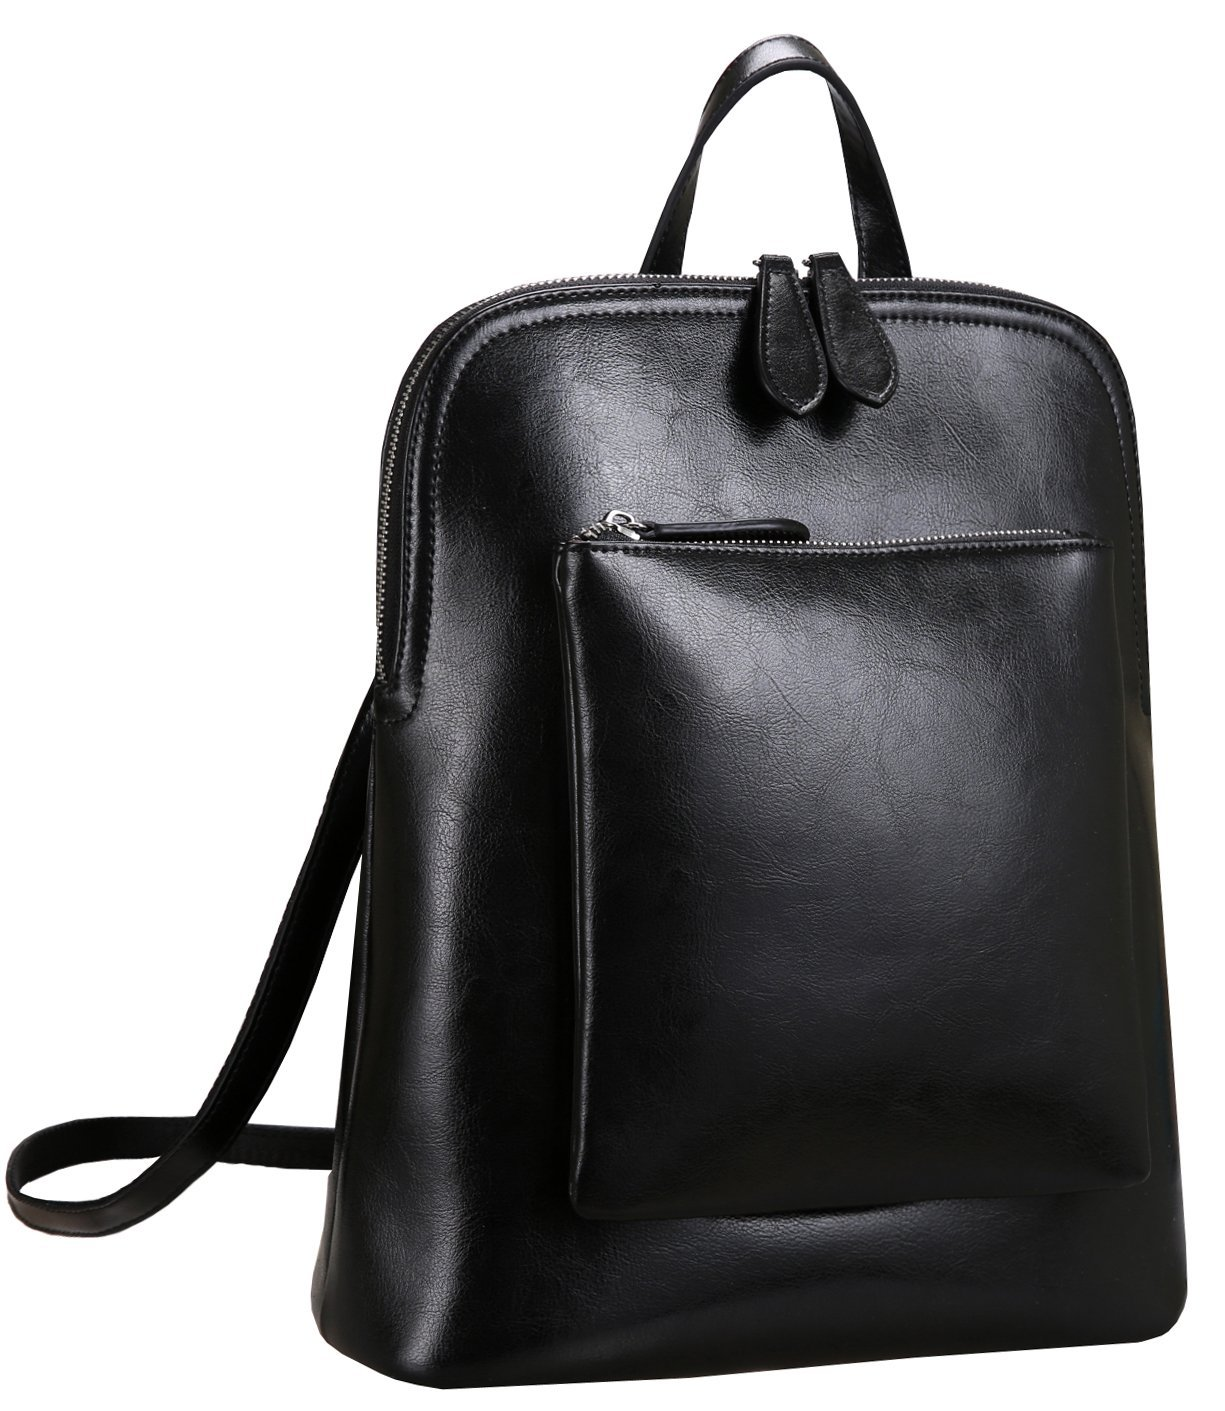 Heshe Women's Vintage Leather Backpack Casual Daypack for Ladies and Girls (Black) by HESHE